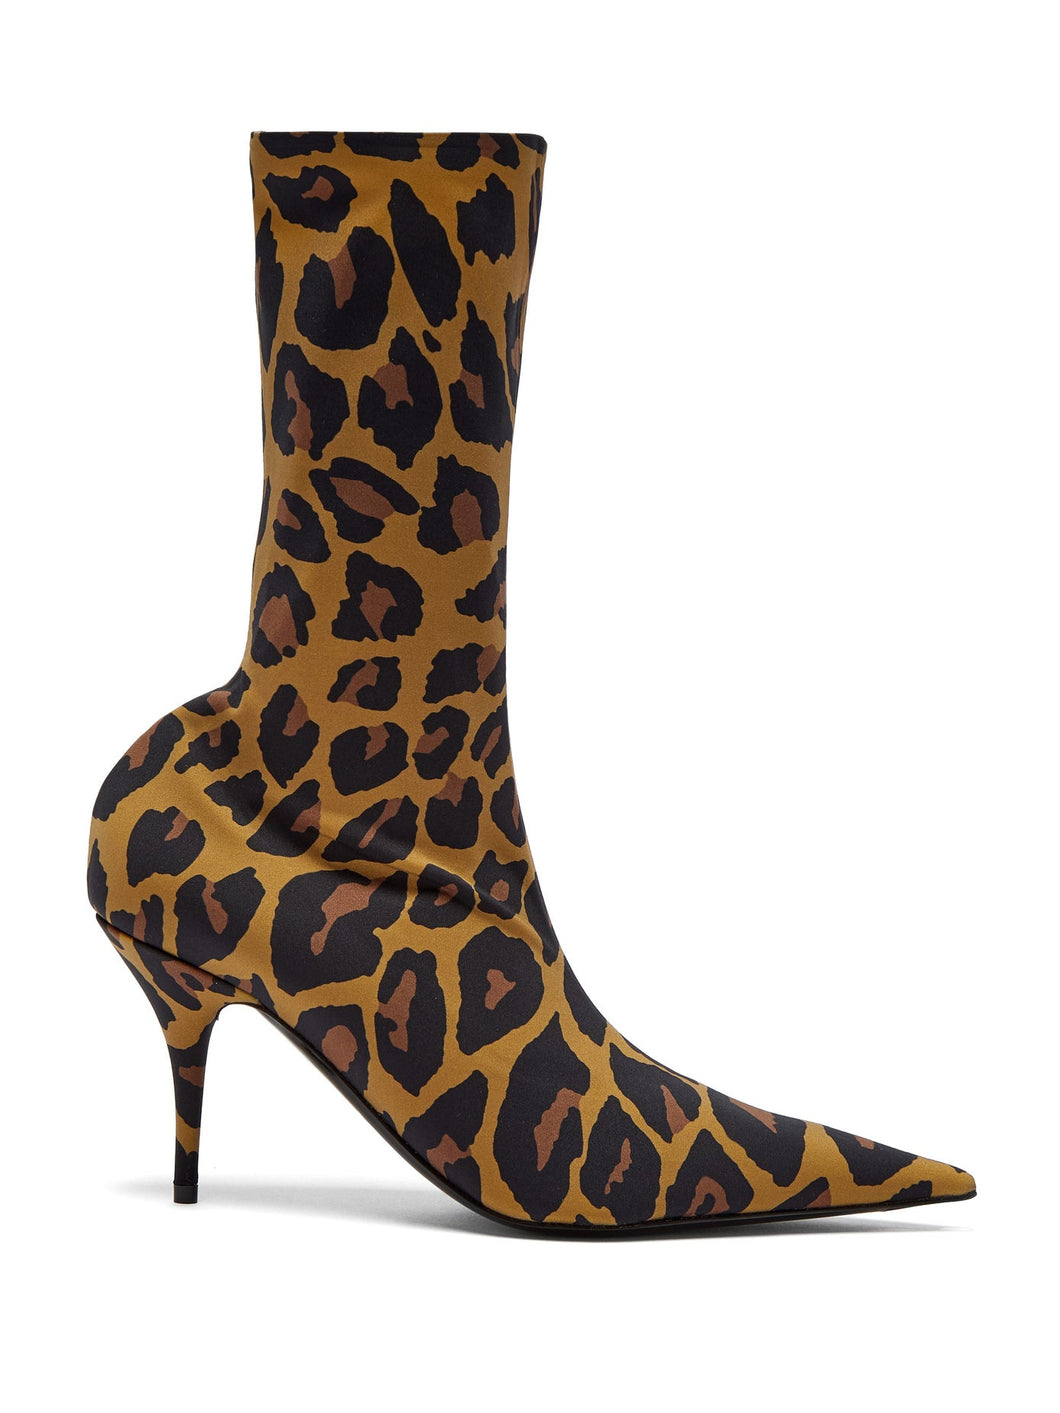 Knife leopard-print booties